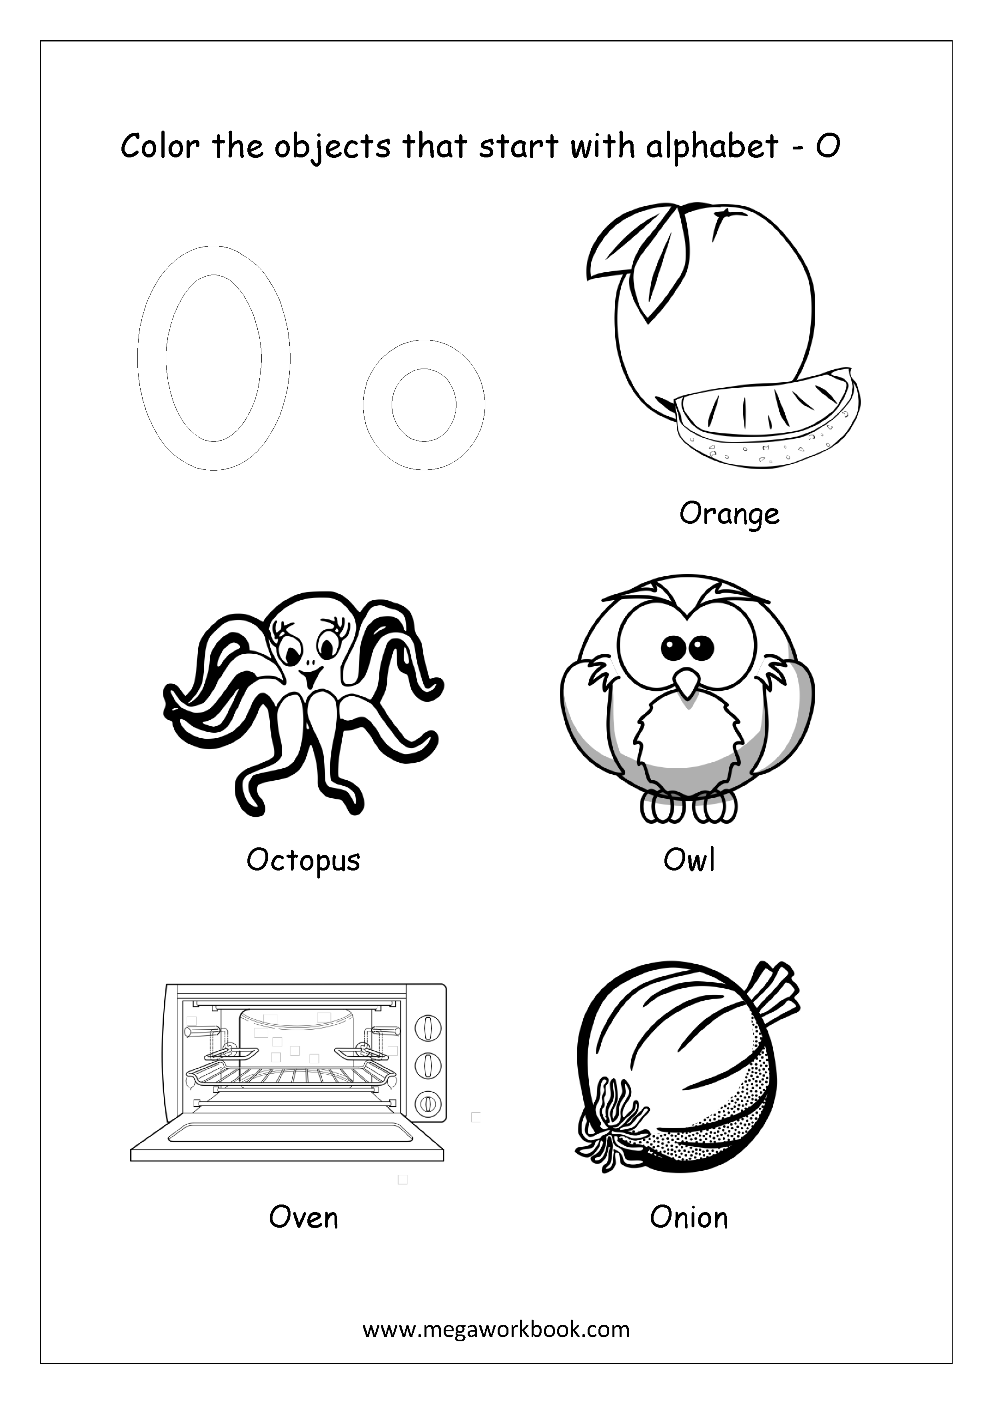 things that start with the letter o alphabet picture coloring pages things that start with 25260 | Color The Objects Starting With Alphabet O